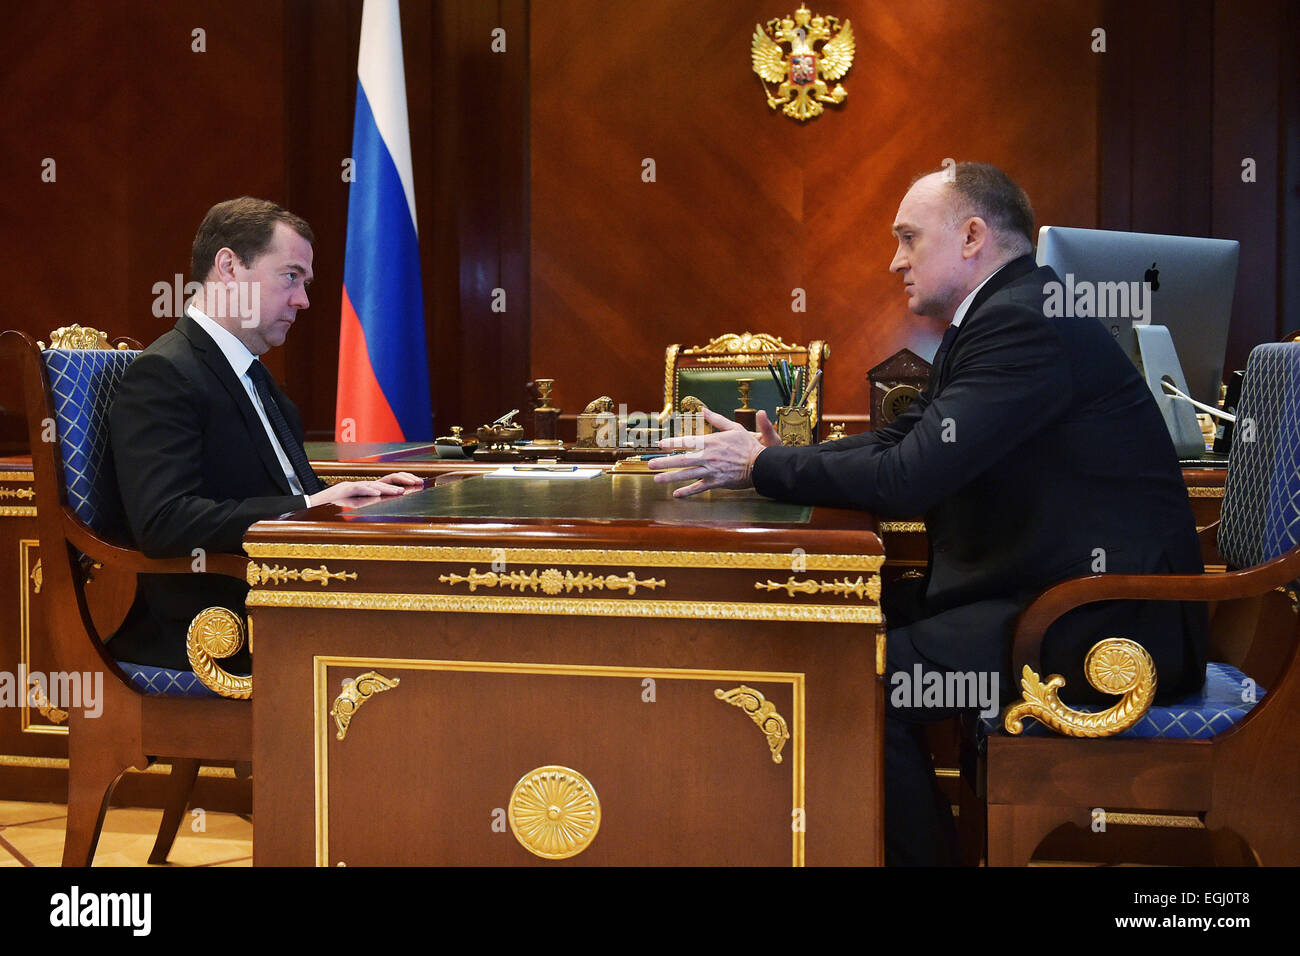 Moscow Region, Russia. 25th Feb, 2015. Russia's prime minister Dmitry Medvedev (L) meets with Chelyabinsk Region - Stock Image